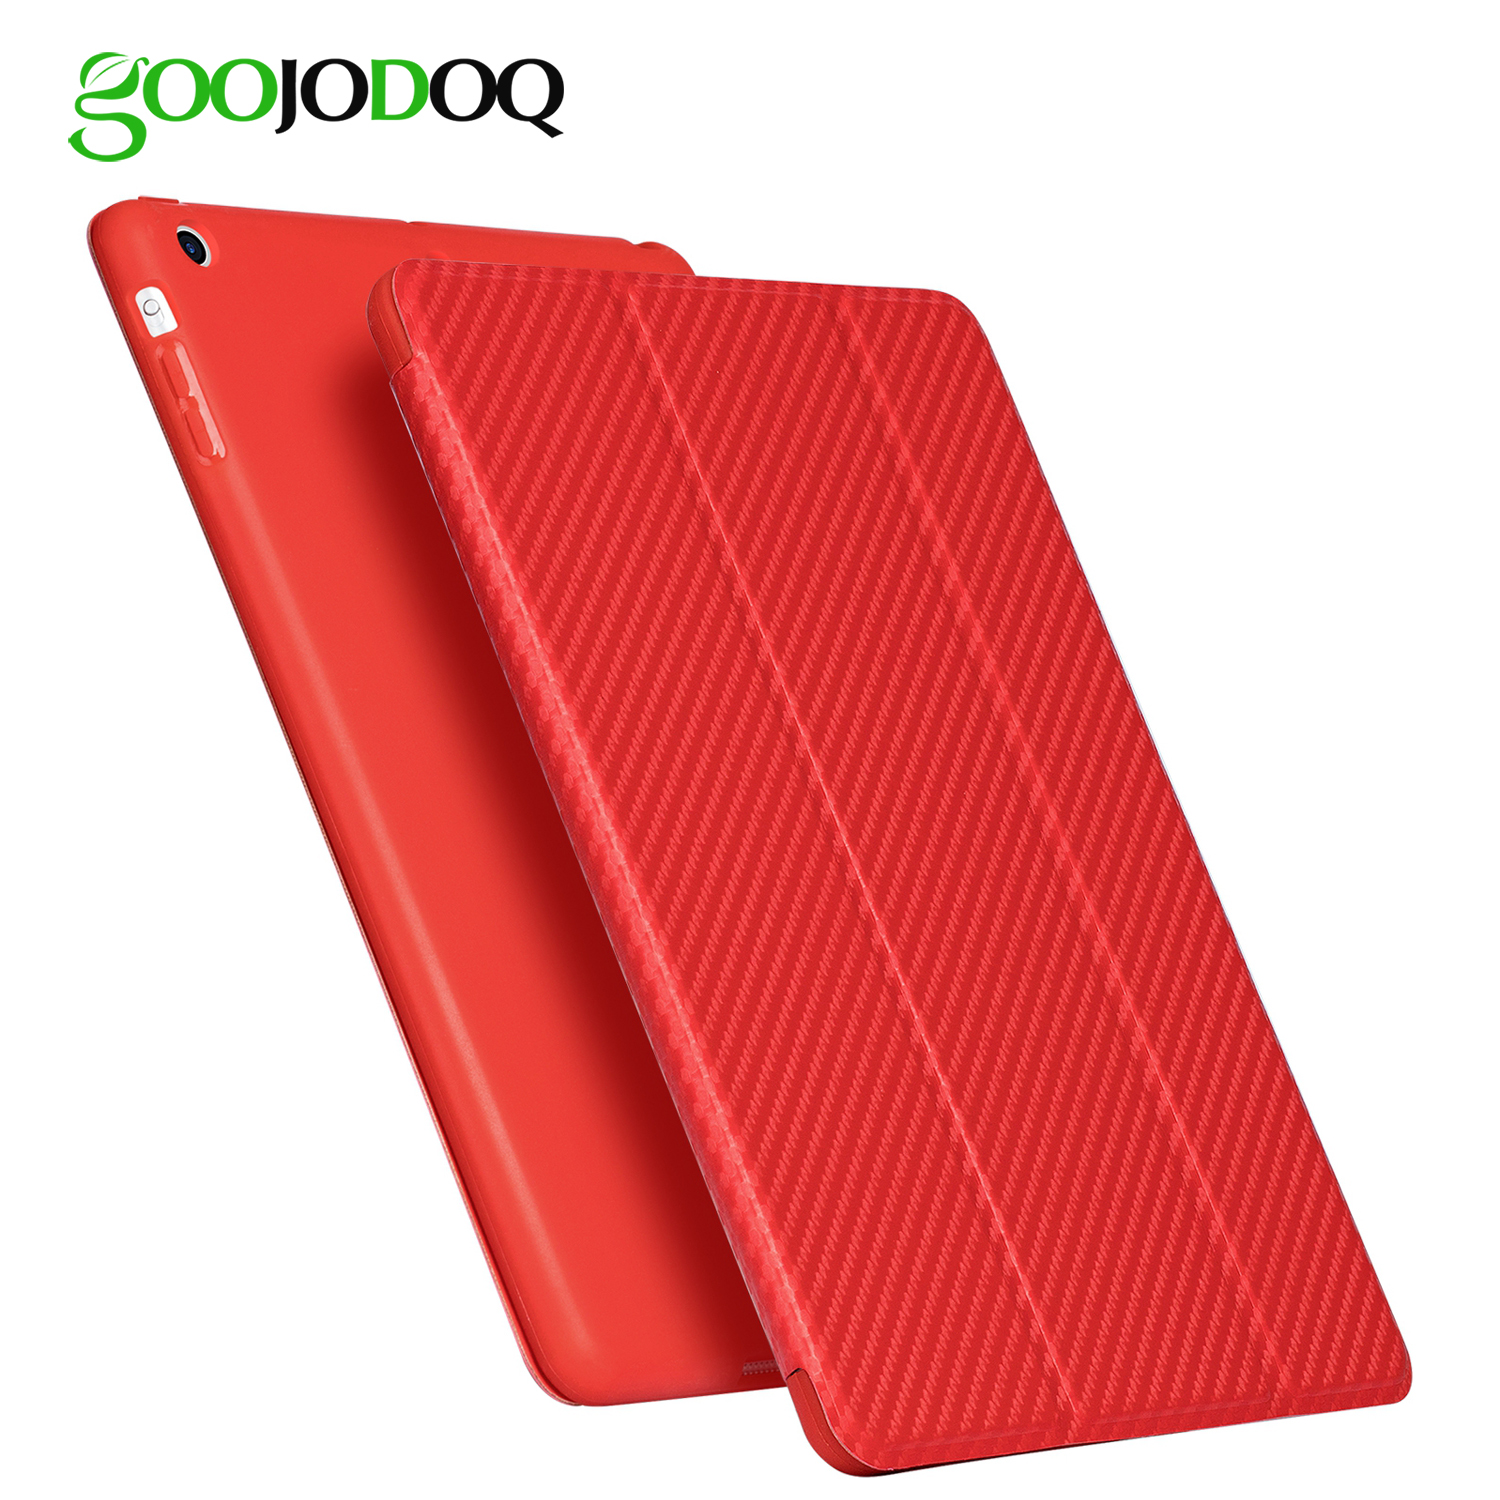 For iPad 2 case, GOOJODOQ Silicone Soft Back Shockproof Smart Cover for iPad 4 3 2 Case Sleep/Wake up PU Leather Case for iPad 4 for apple ipad 2 ipad 3 shockproof case kenke cover for ipad 4 retina smart case slim designer tablet pu for ipad 4 case